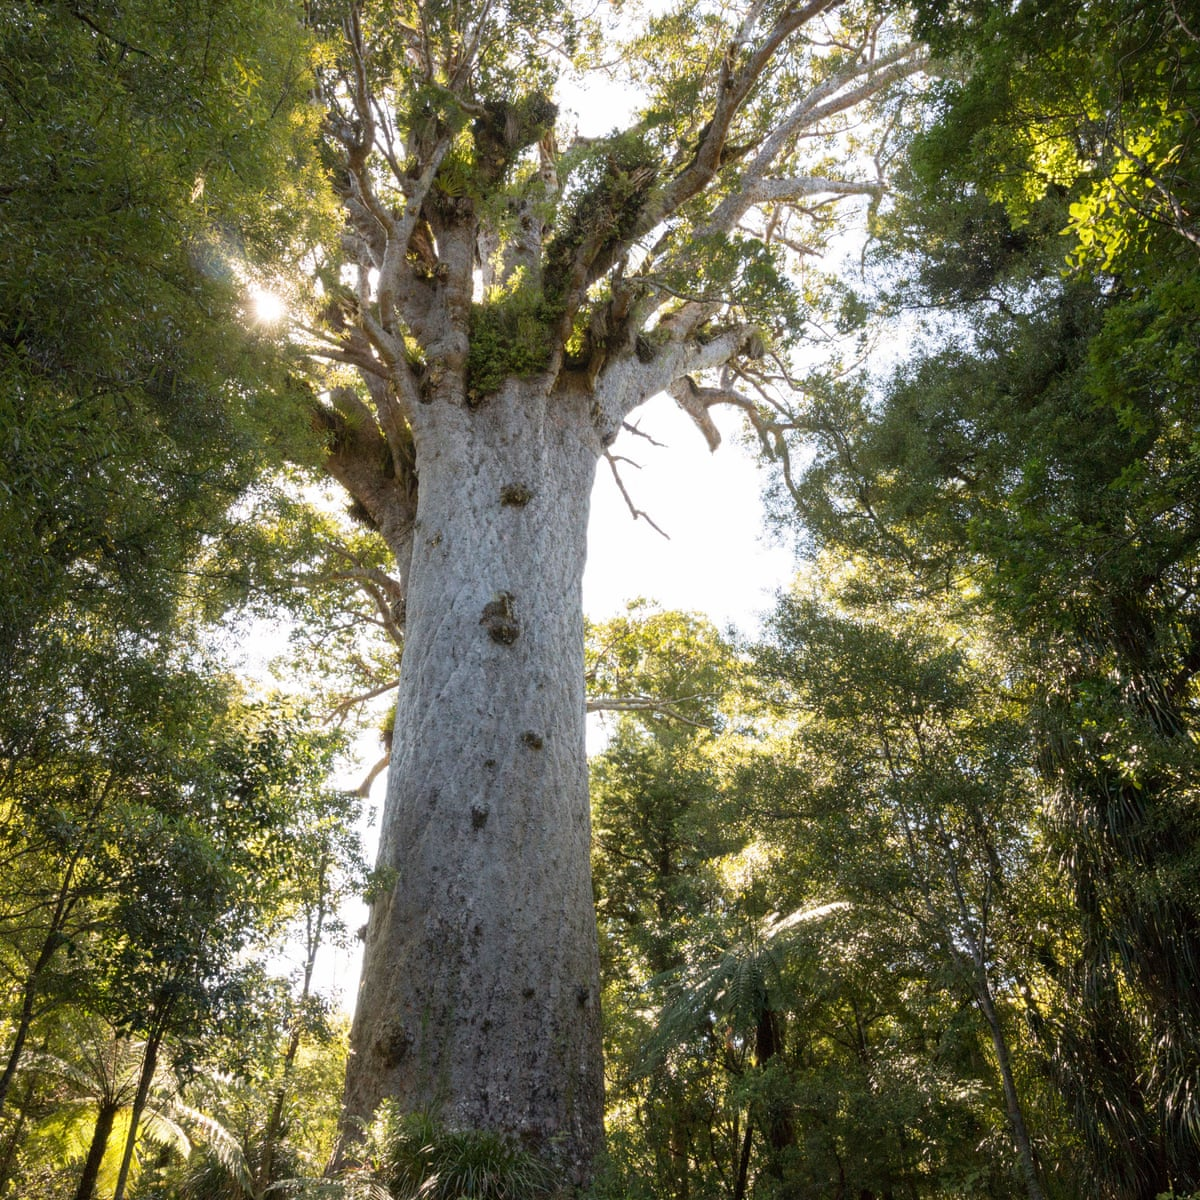 First Hiker Charged In New Zealand With Entering Quarantined Kauri Forest New Zealand The Guardian • contracted for a project constructing a life size kauri tree that was commissioned for the new te ahu centre in kaitaia. entering quarantined kauri forest